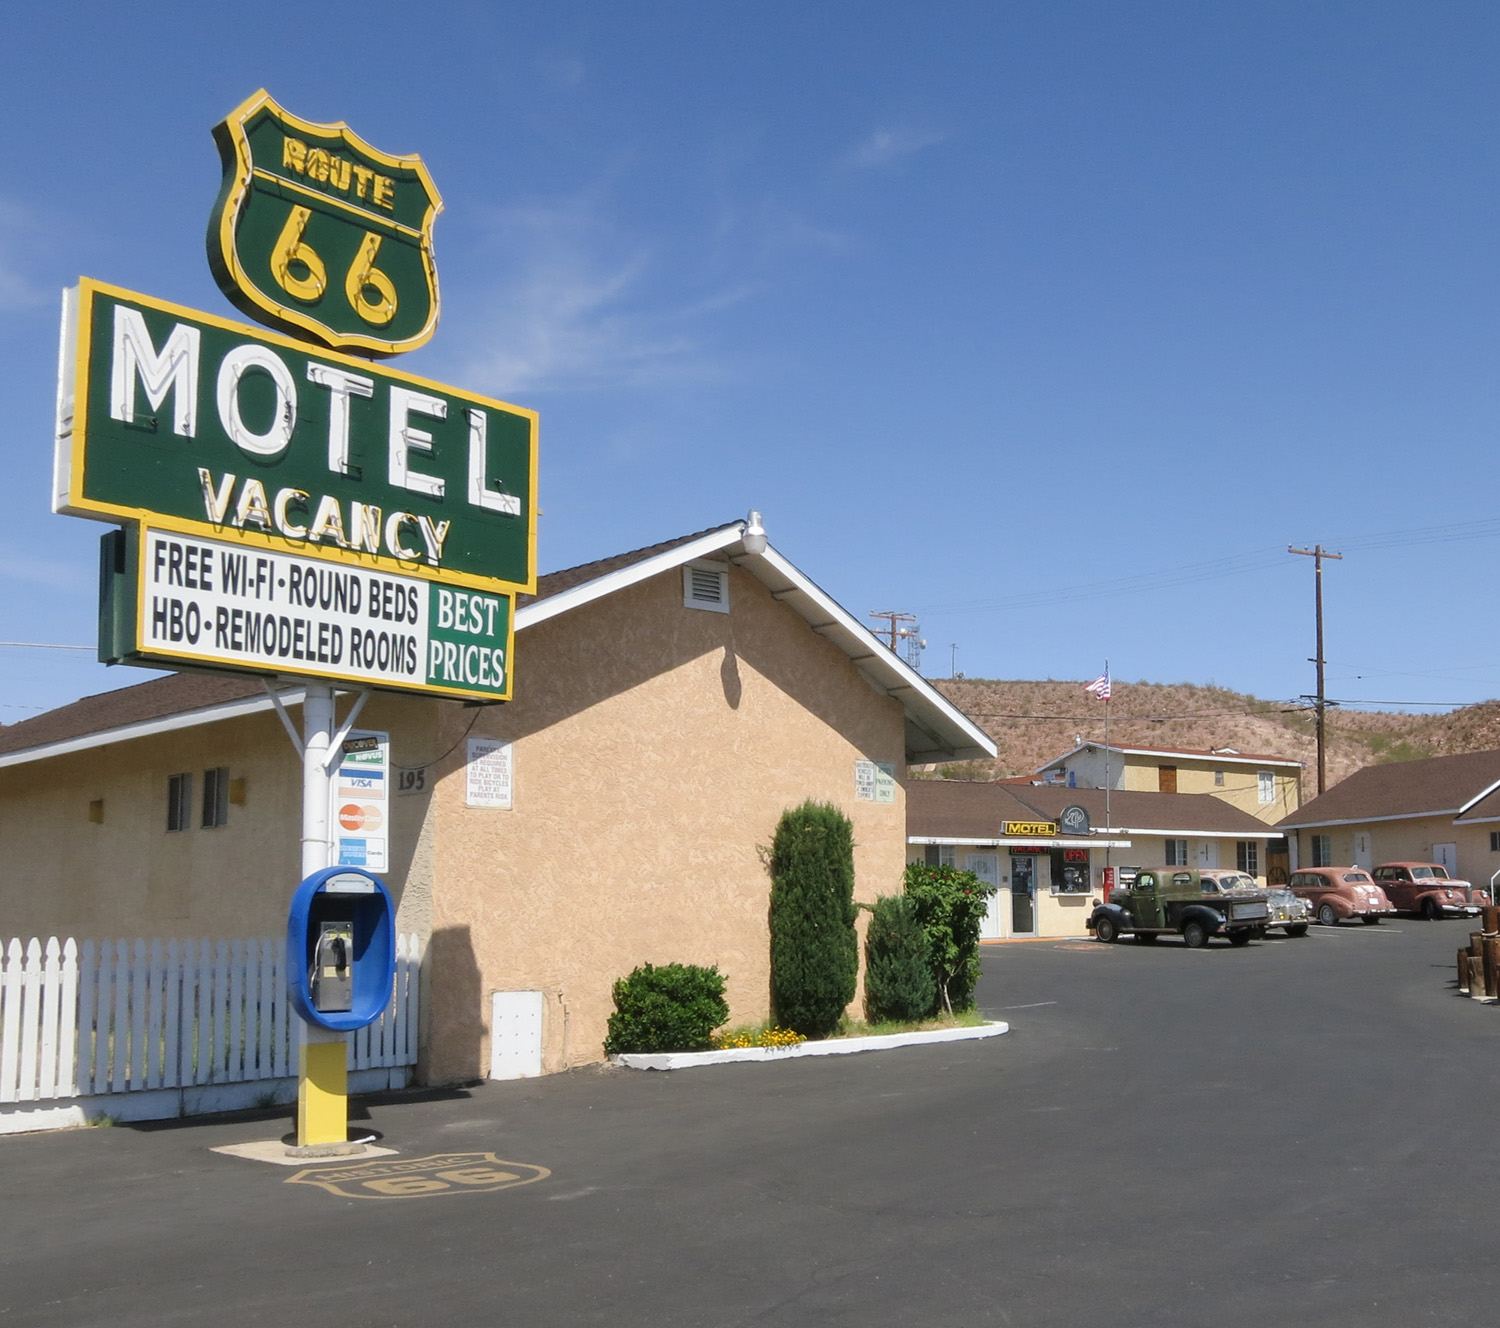 The sad old motels of Barstow, California / Boing Boing